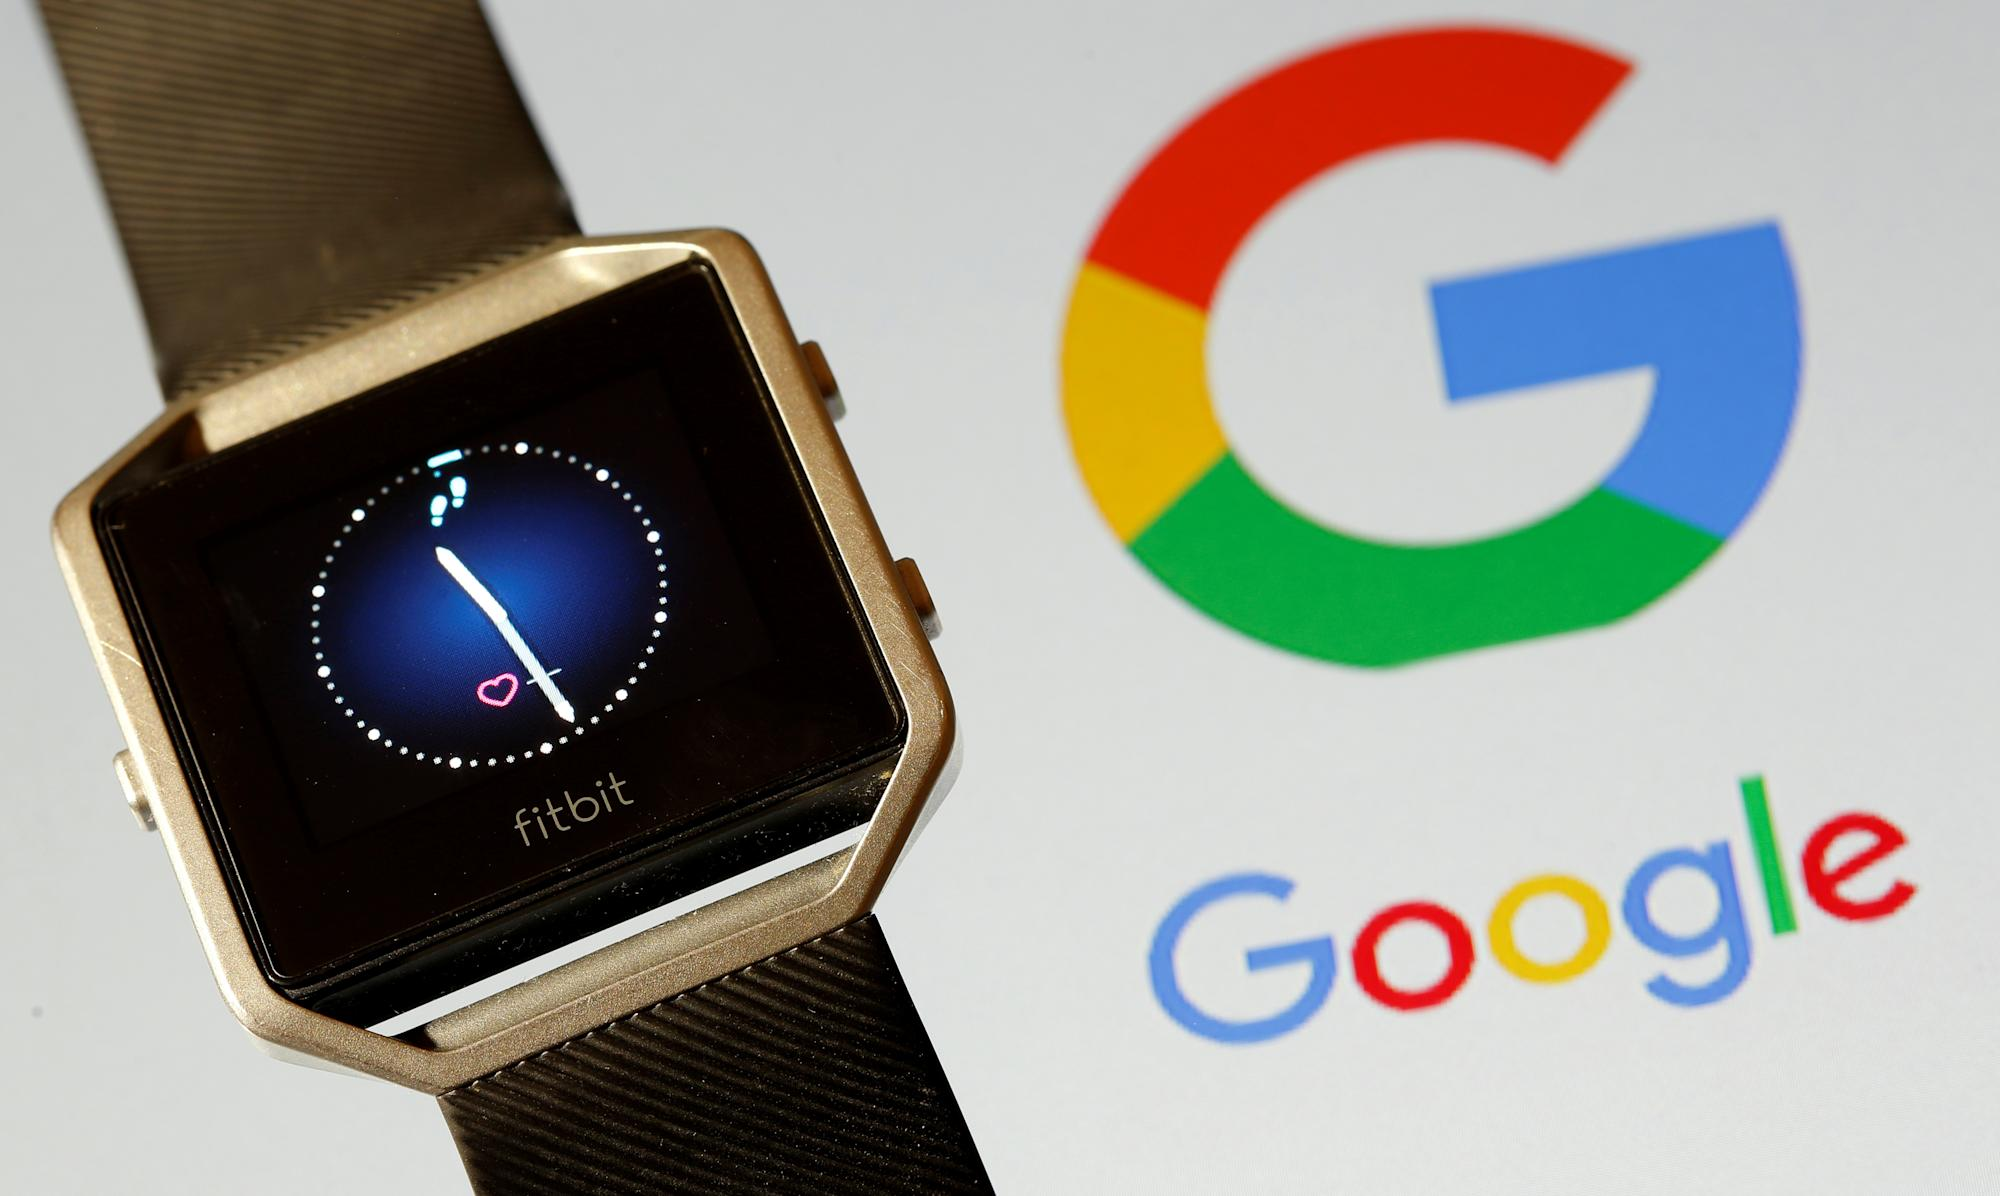 Google is teaming up with Samsung to take on the Apple Watch